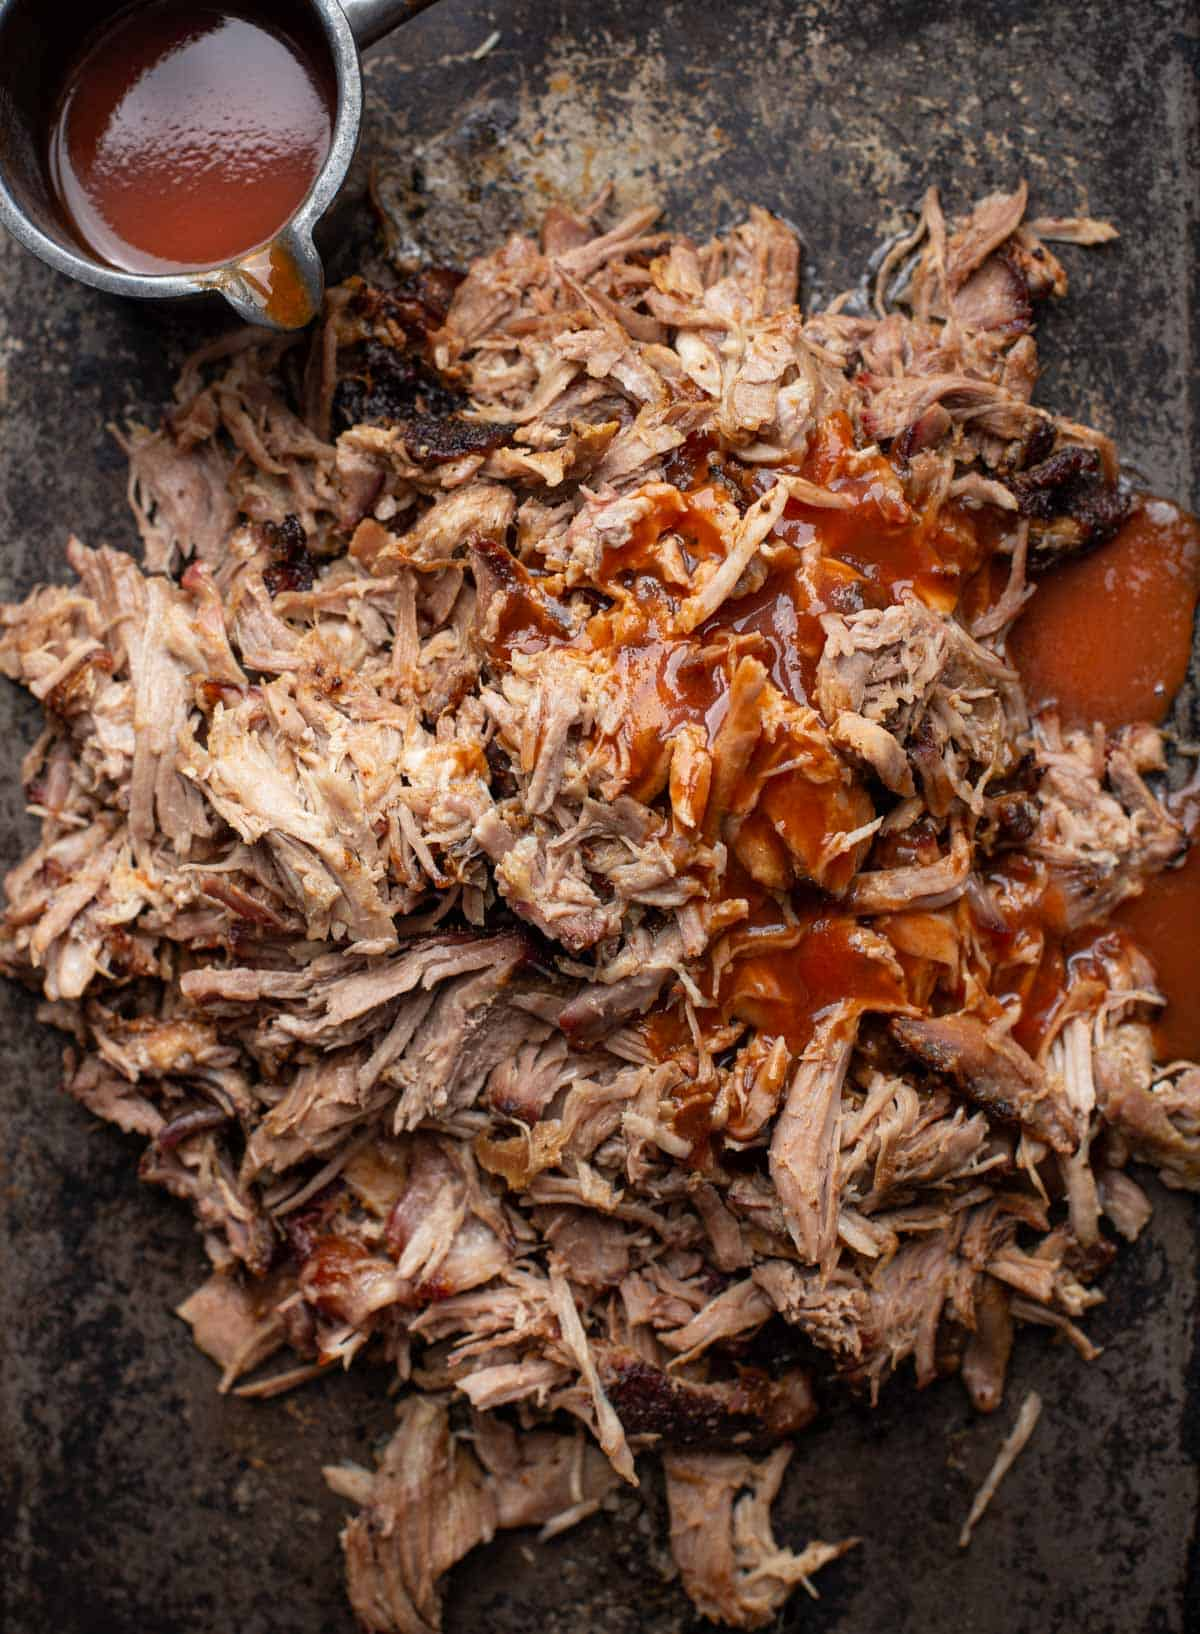 Pulled Pork on a Sheetpan